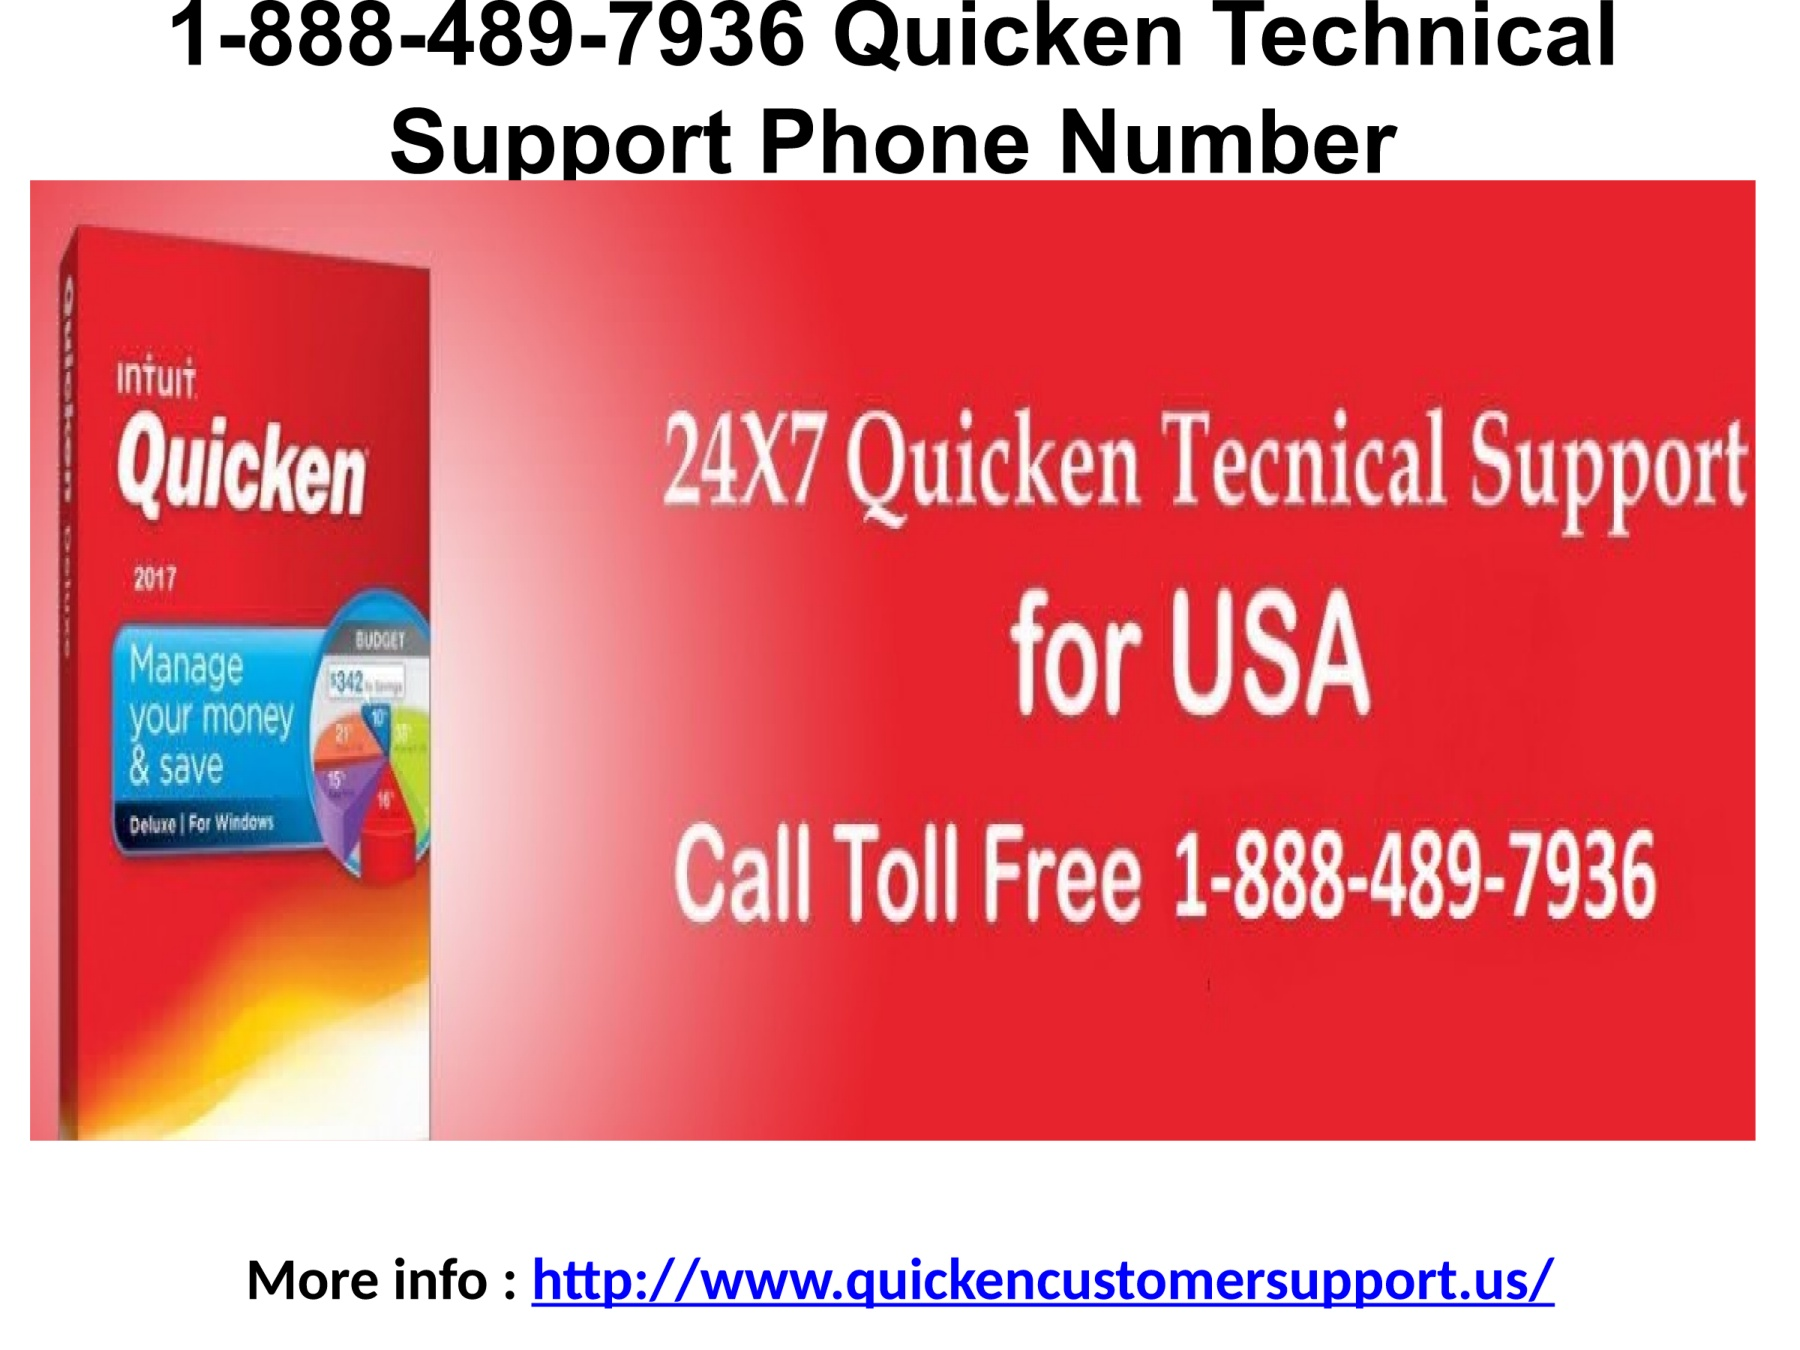 1-888-489-7936 Quicken Technical Support Phone Number